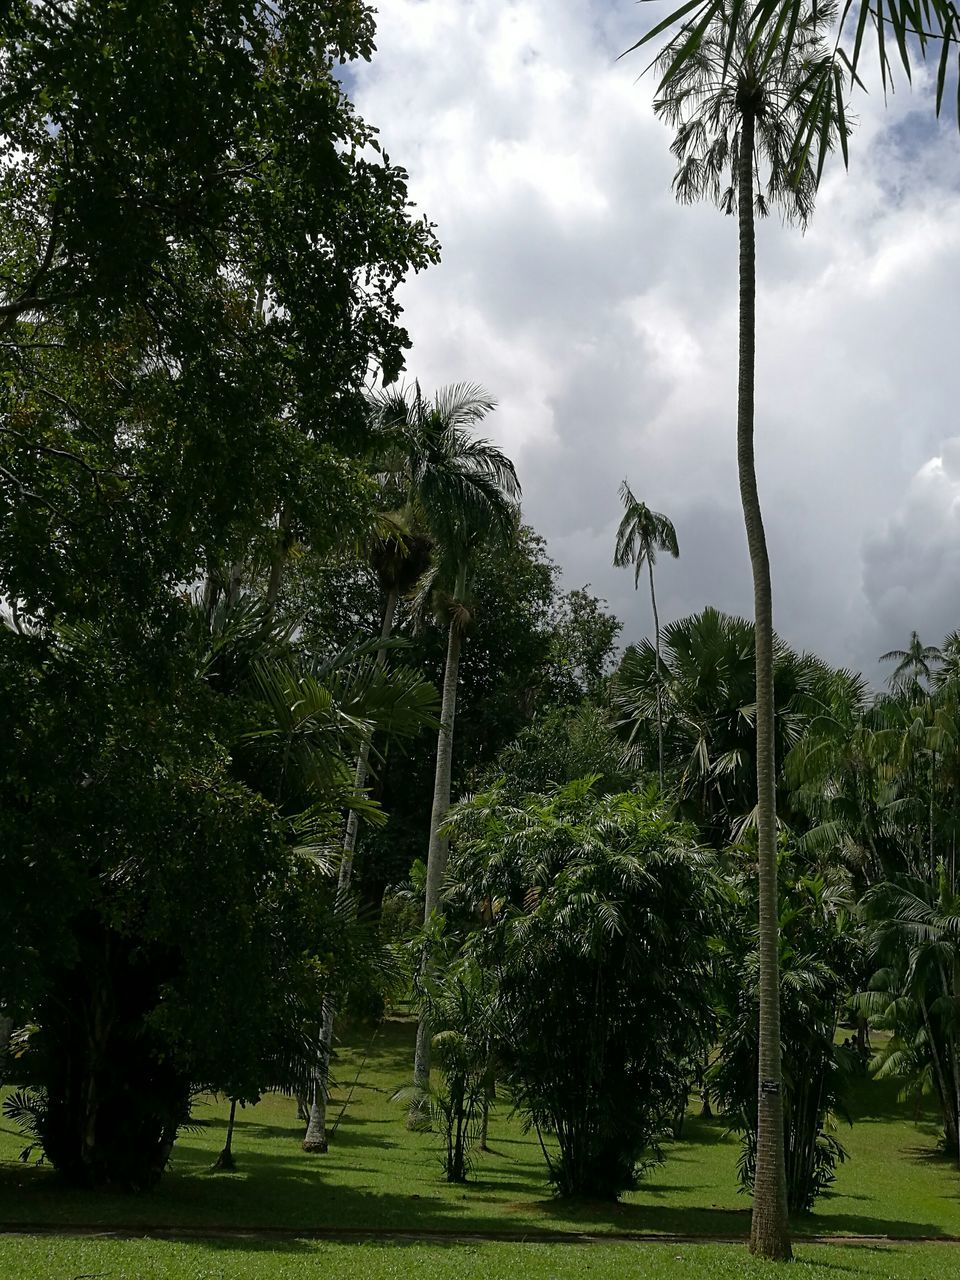 tree, palm tree, growth, green color, nature, tranquility, beauty in nature, sky, no people, day, cloud - sky, grass, outdoors, scenics, branch